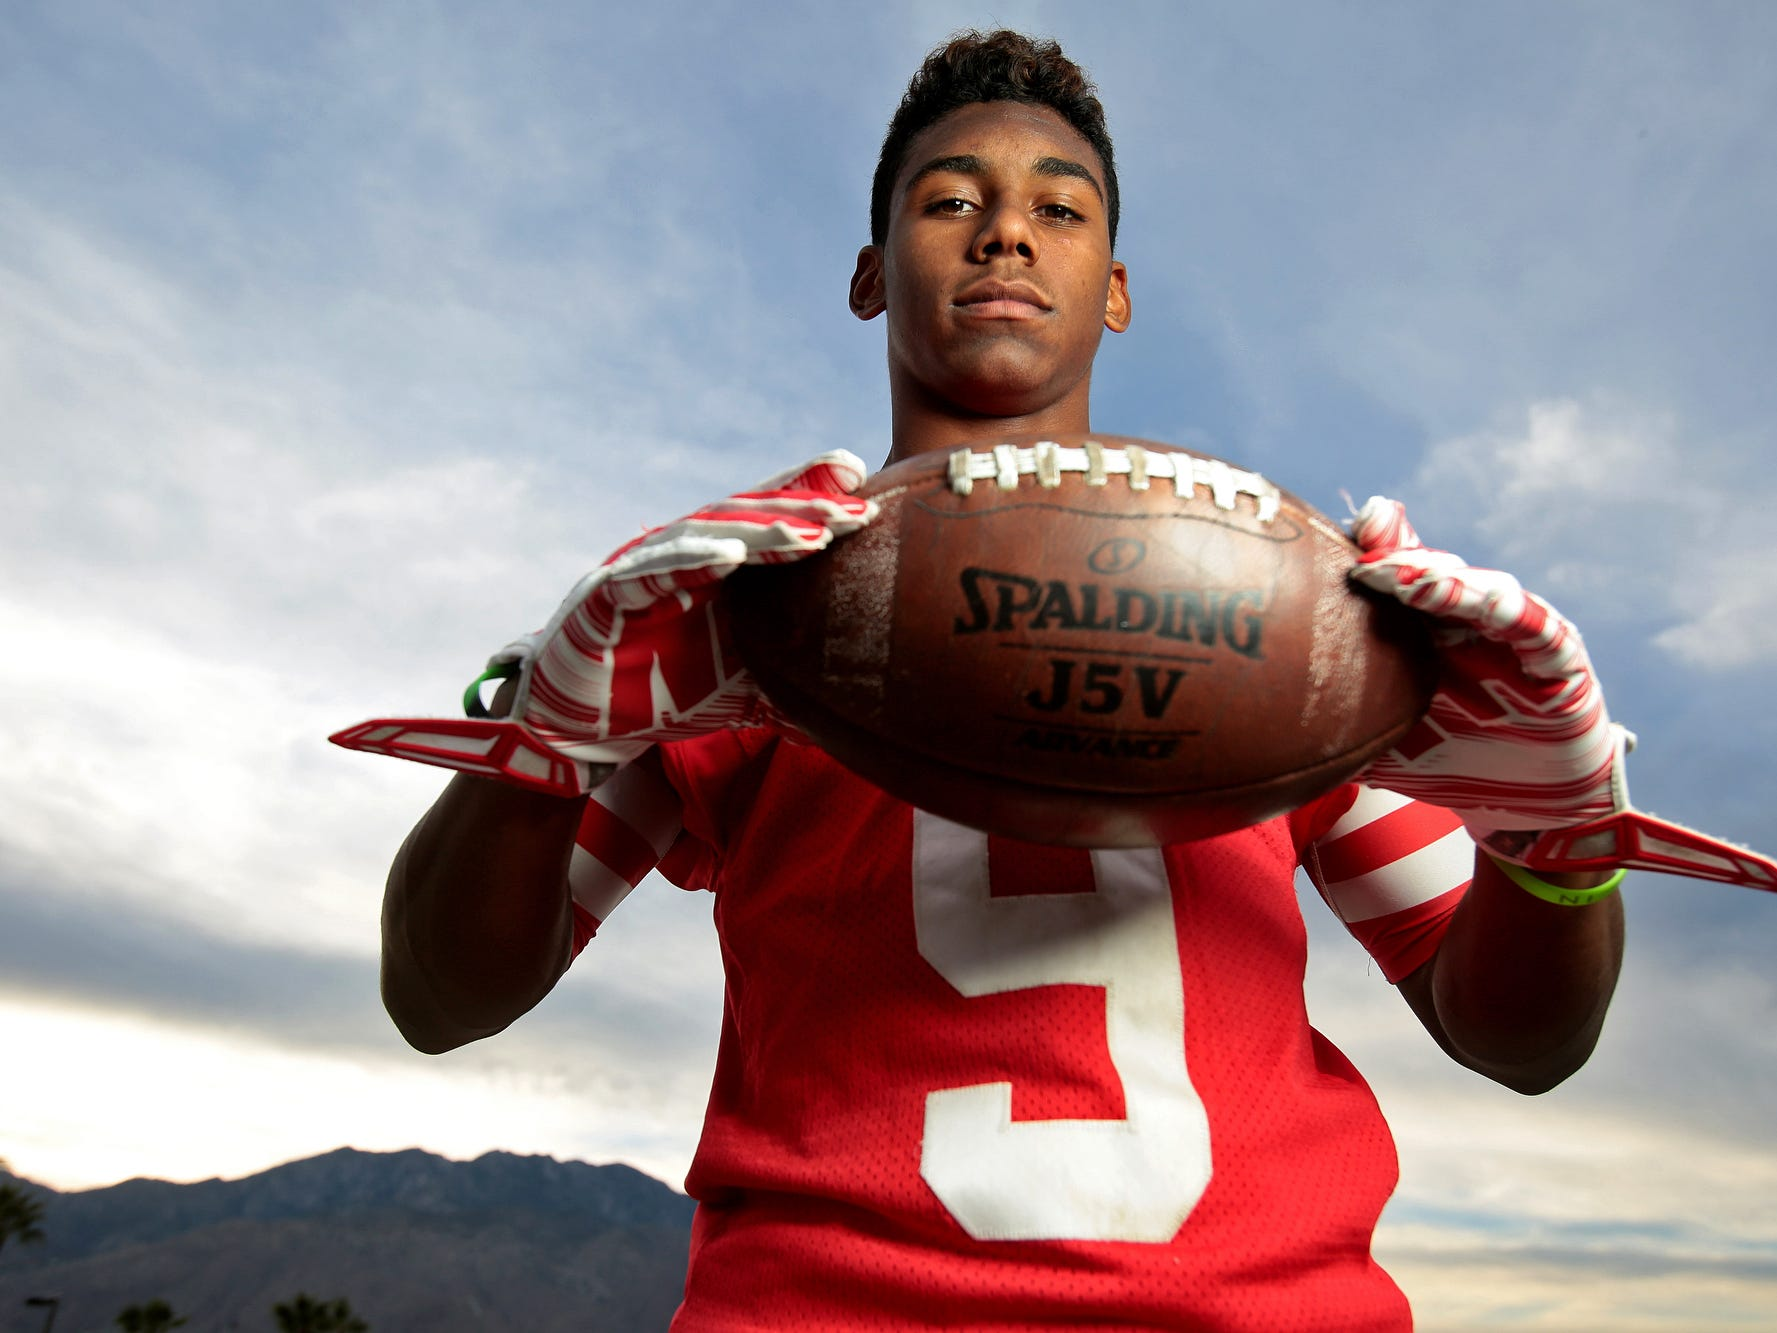 Palm Springs junior defensive back Franklin Miller returned two of his six interceptions for touchdowns this season for the champion Indians.